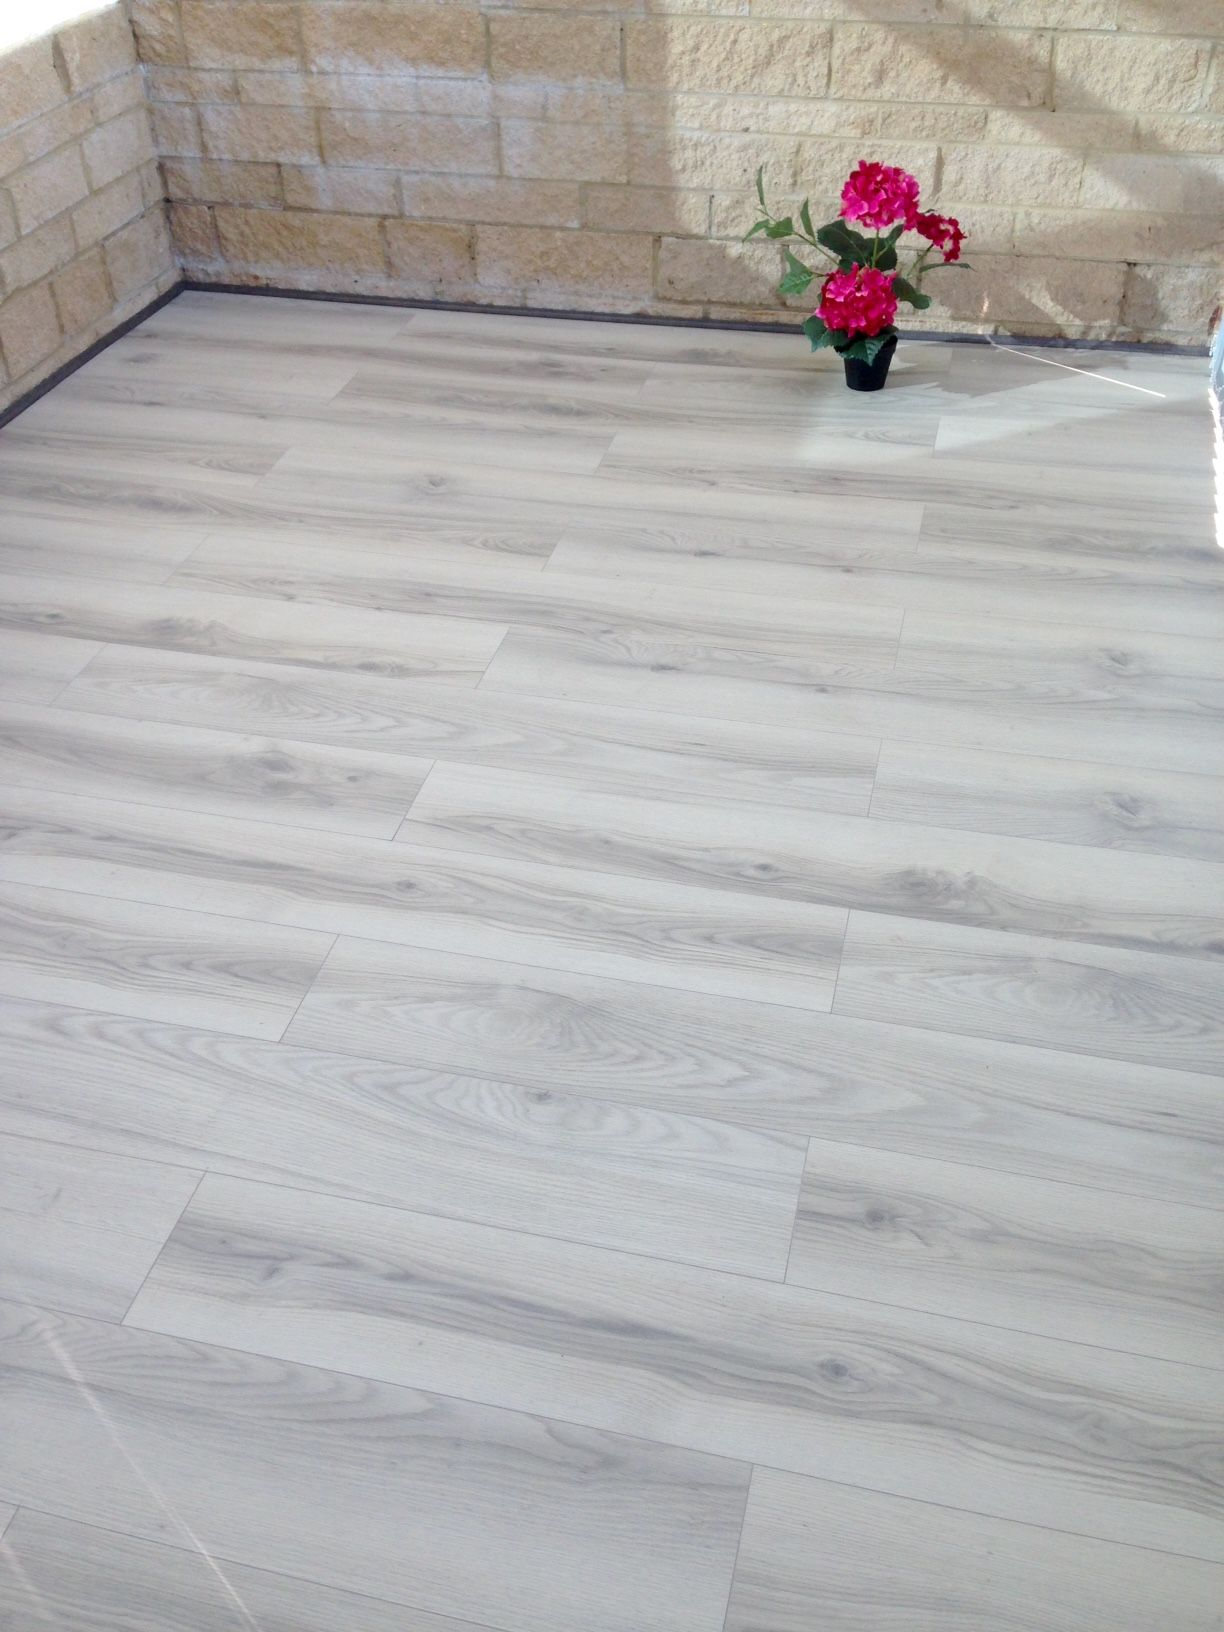 The Style 11mm Antarctica Oak is an 11mm thick laminate